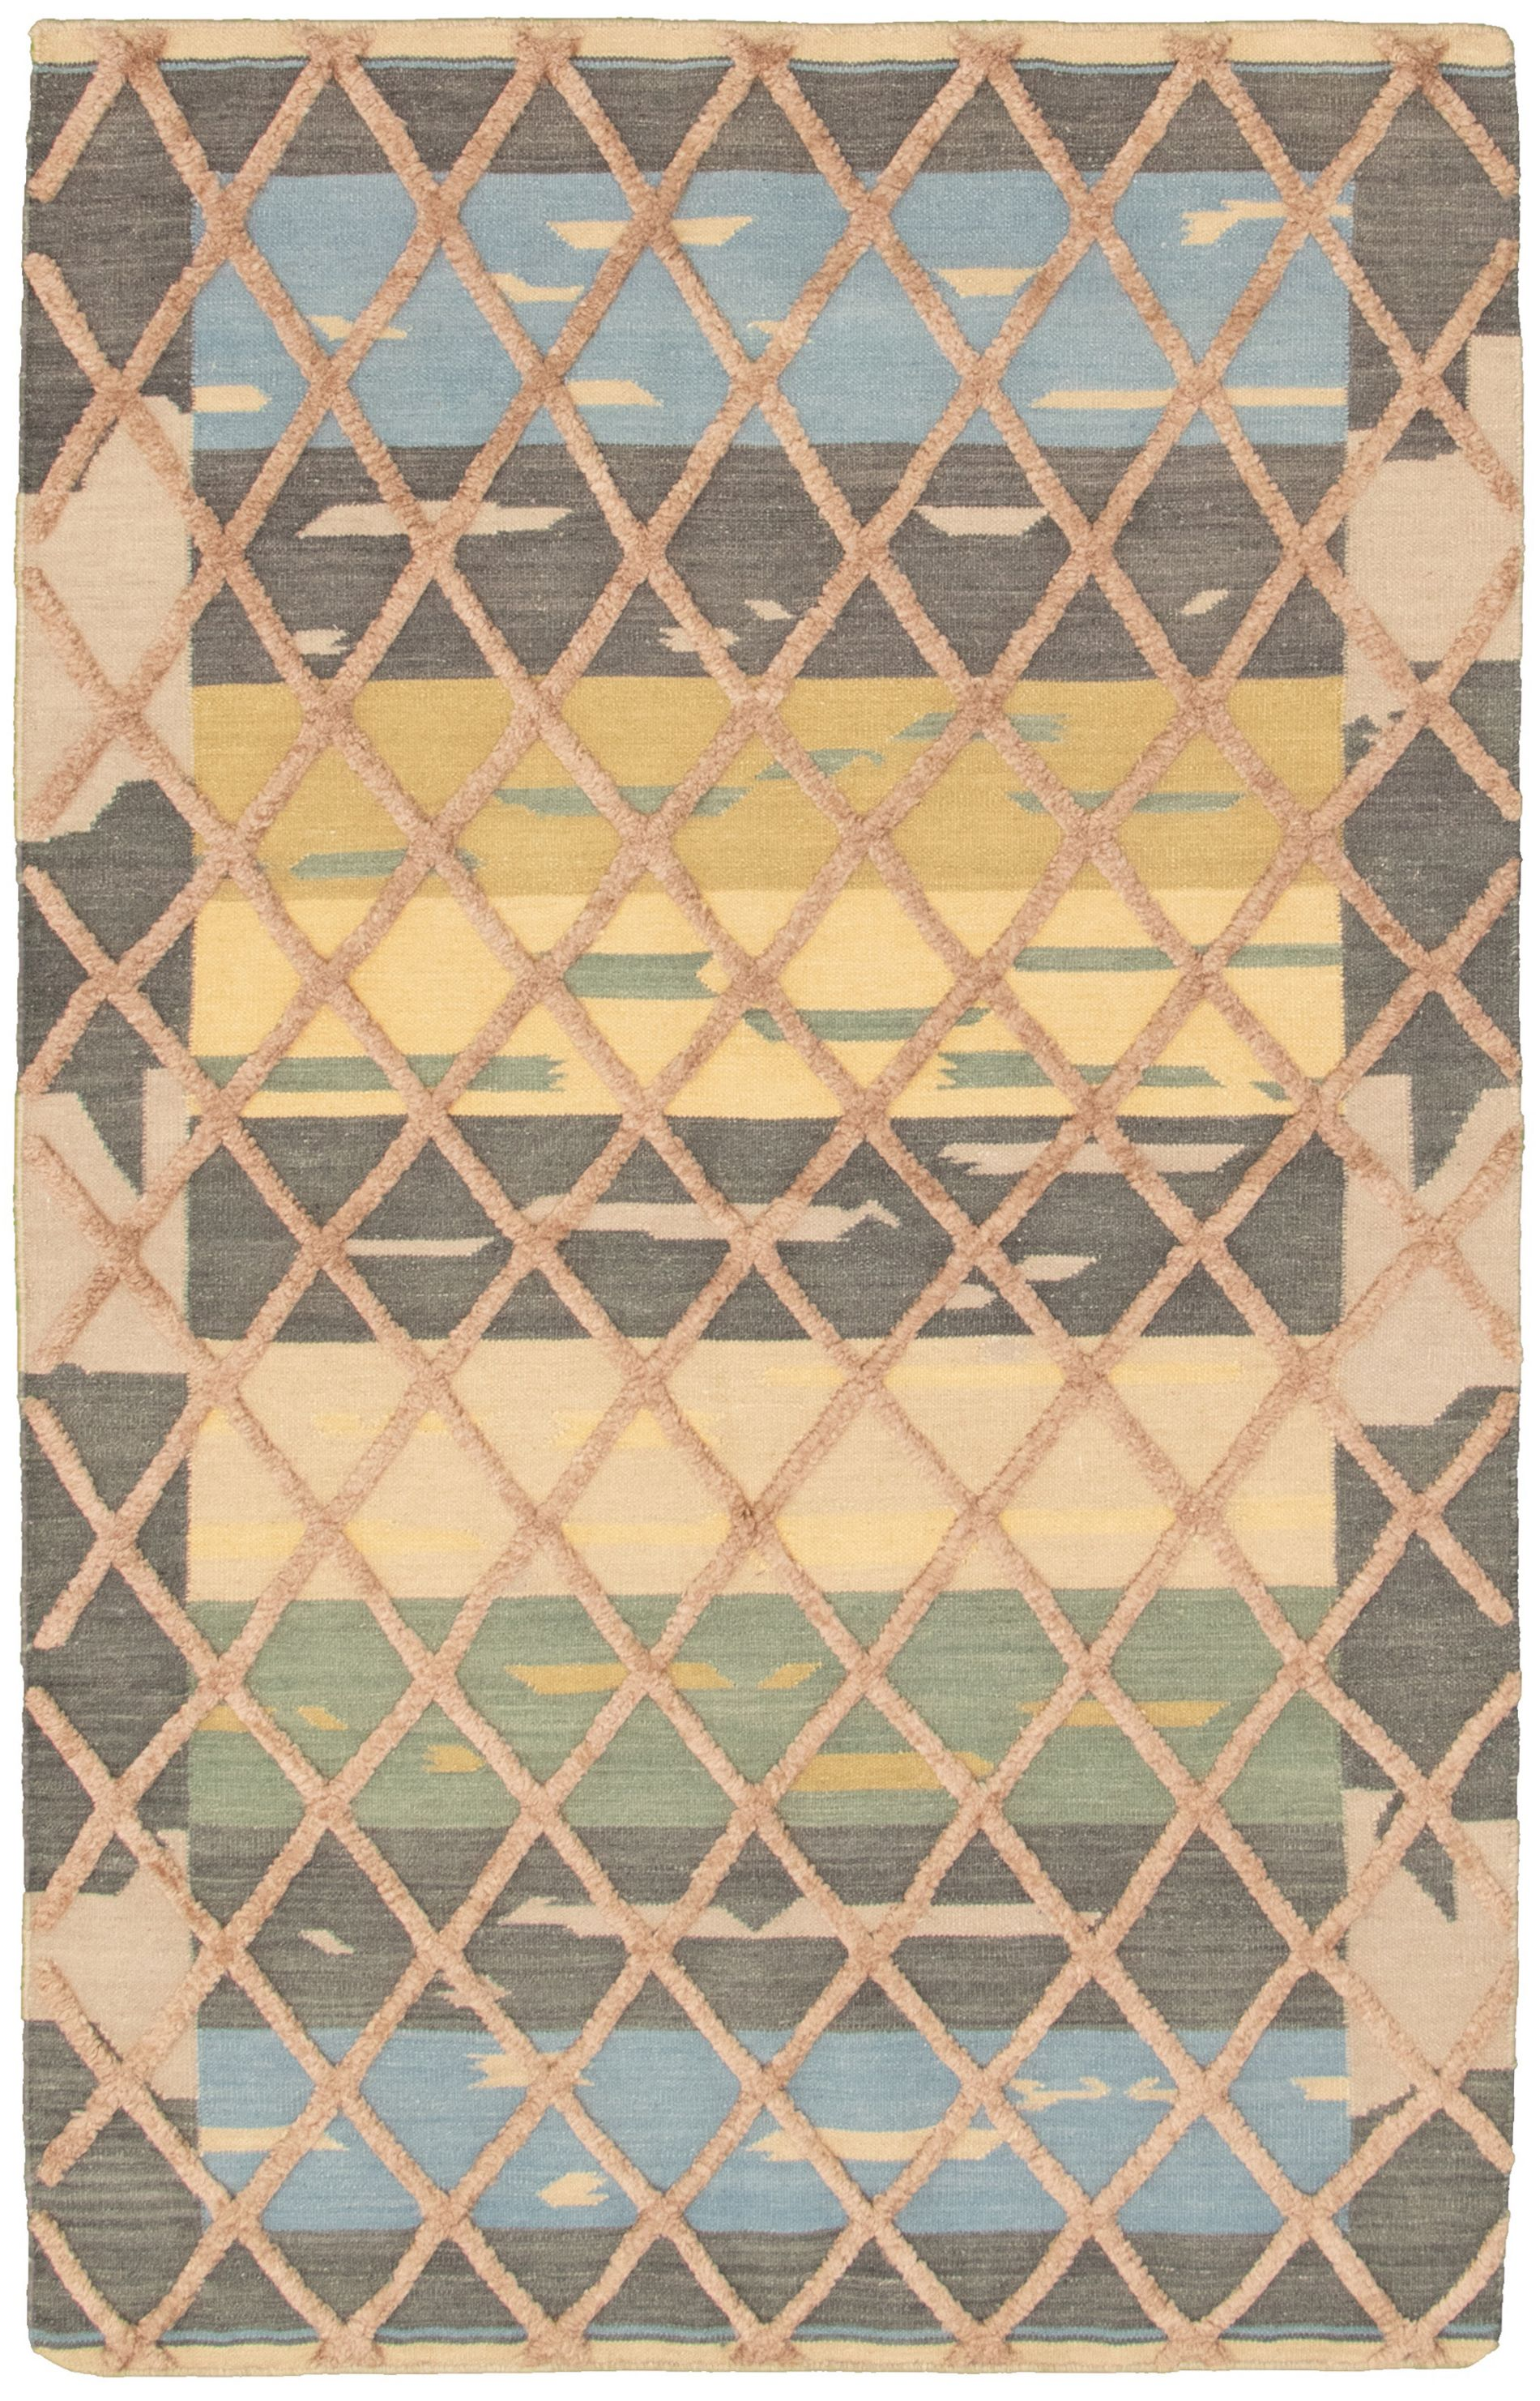 "Hand woven Cambridge Beige, Dark Grey Wool Kilim 5'0"" x 7'10"" Size: 5'0"" x 7'10"""